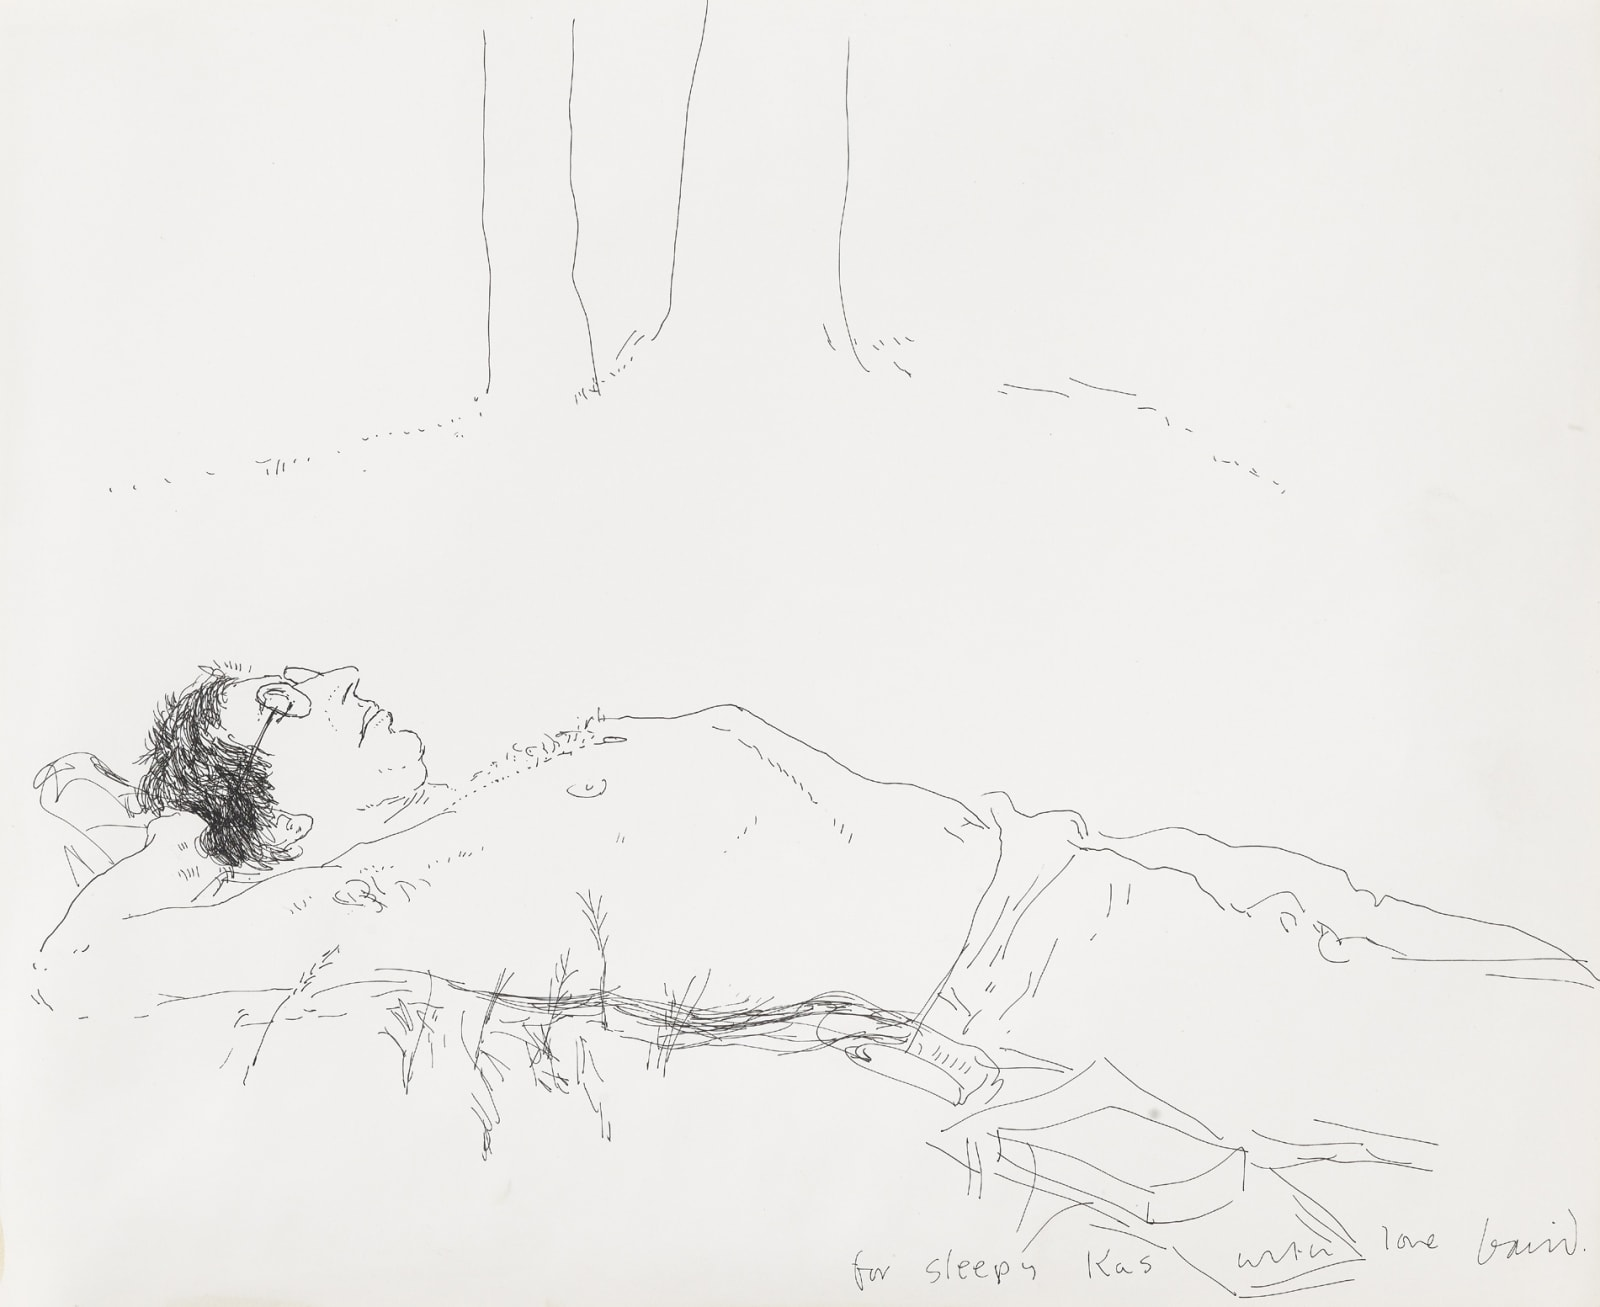 For Sleepy Kas, 1967, © David Hockney PRIVATE COLLECTION